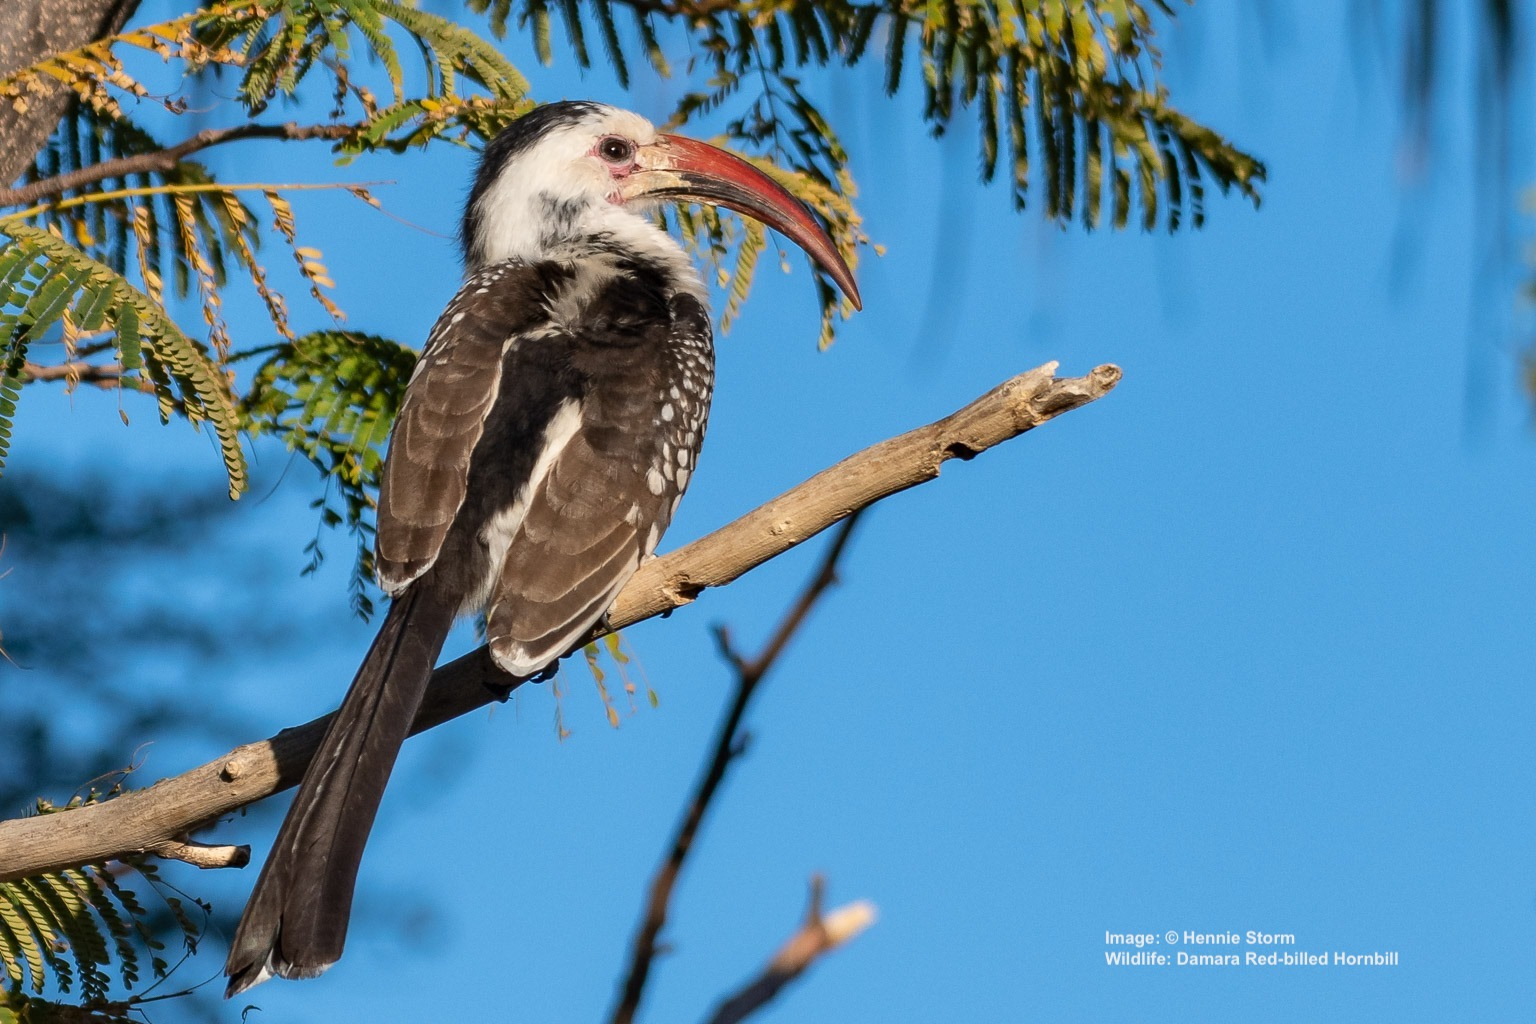 DAMARA RED-BILLED HORNBILL IS ALSO FOUND IN THIS AREA BUT THEIR RANGE EXTENDS IN A STRIP ACROSS THE DRIER REGIONS OF THE CONTINENT. IMAGE:  ©HENNIE STORM